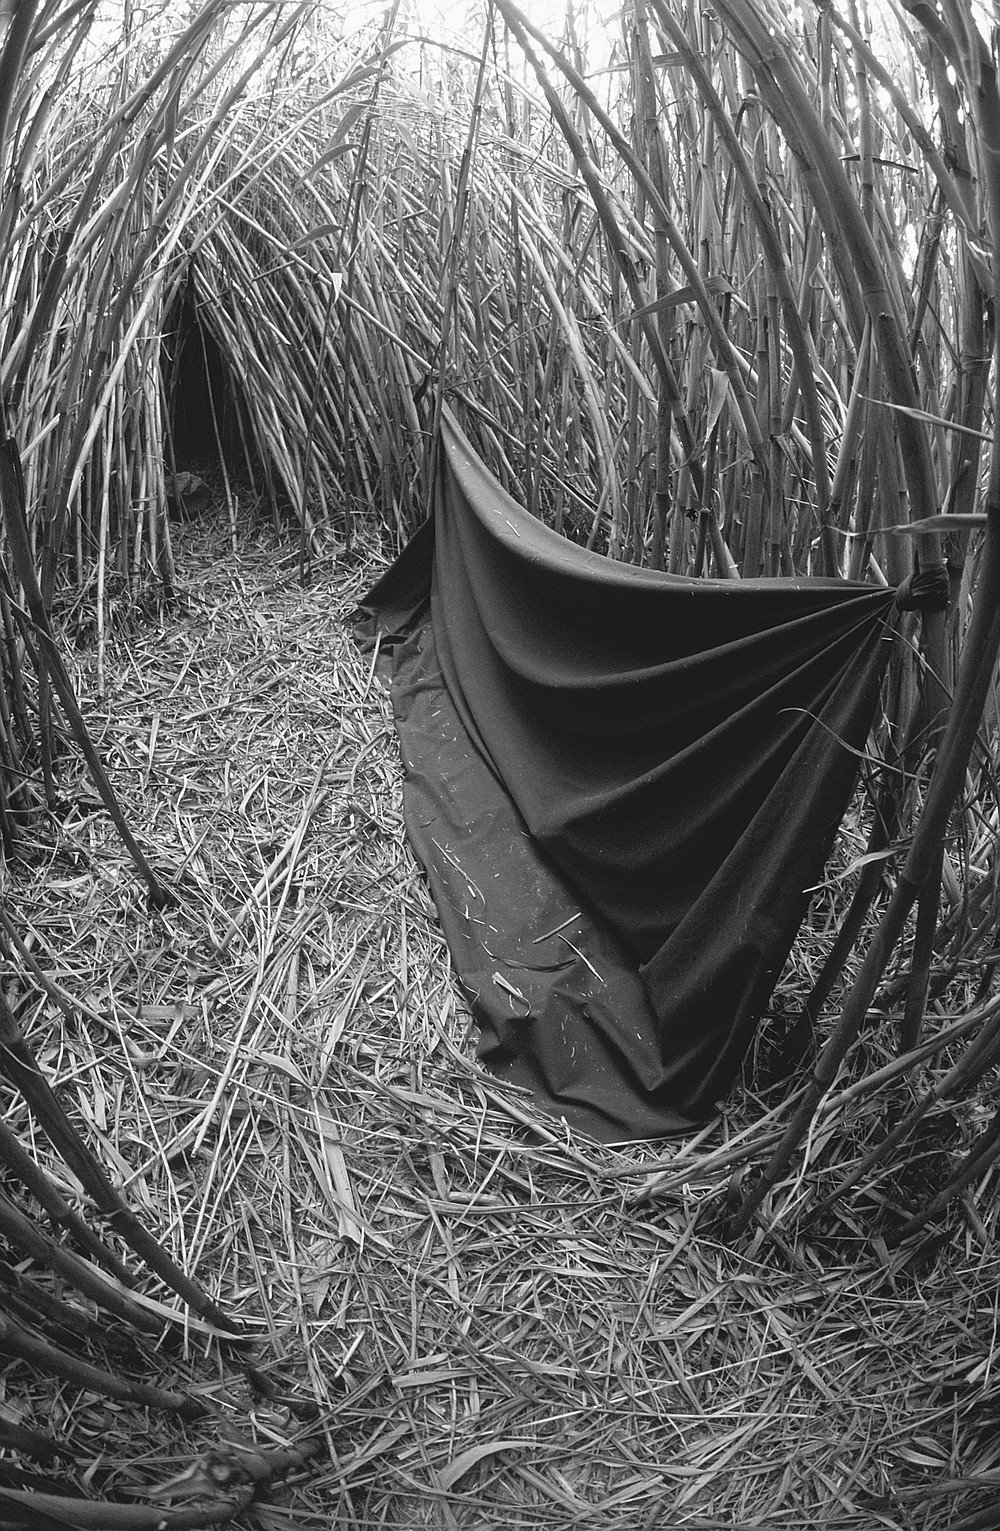 Along North River Road near Camp Pendleton are small, tentlike caves cut into the reeds; spanning the entrance to each hooch was a blanket or a plastic sheet.